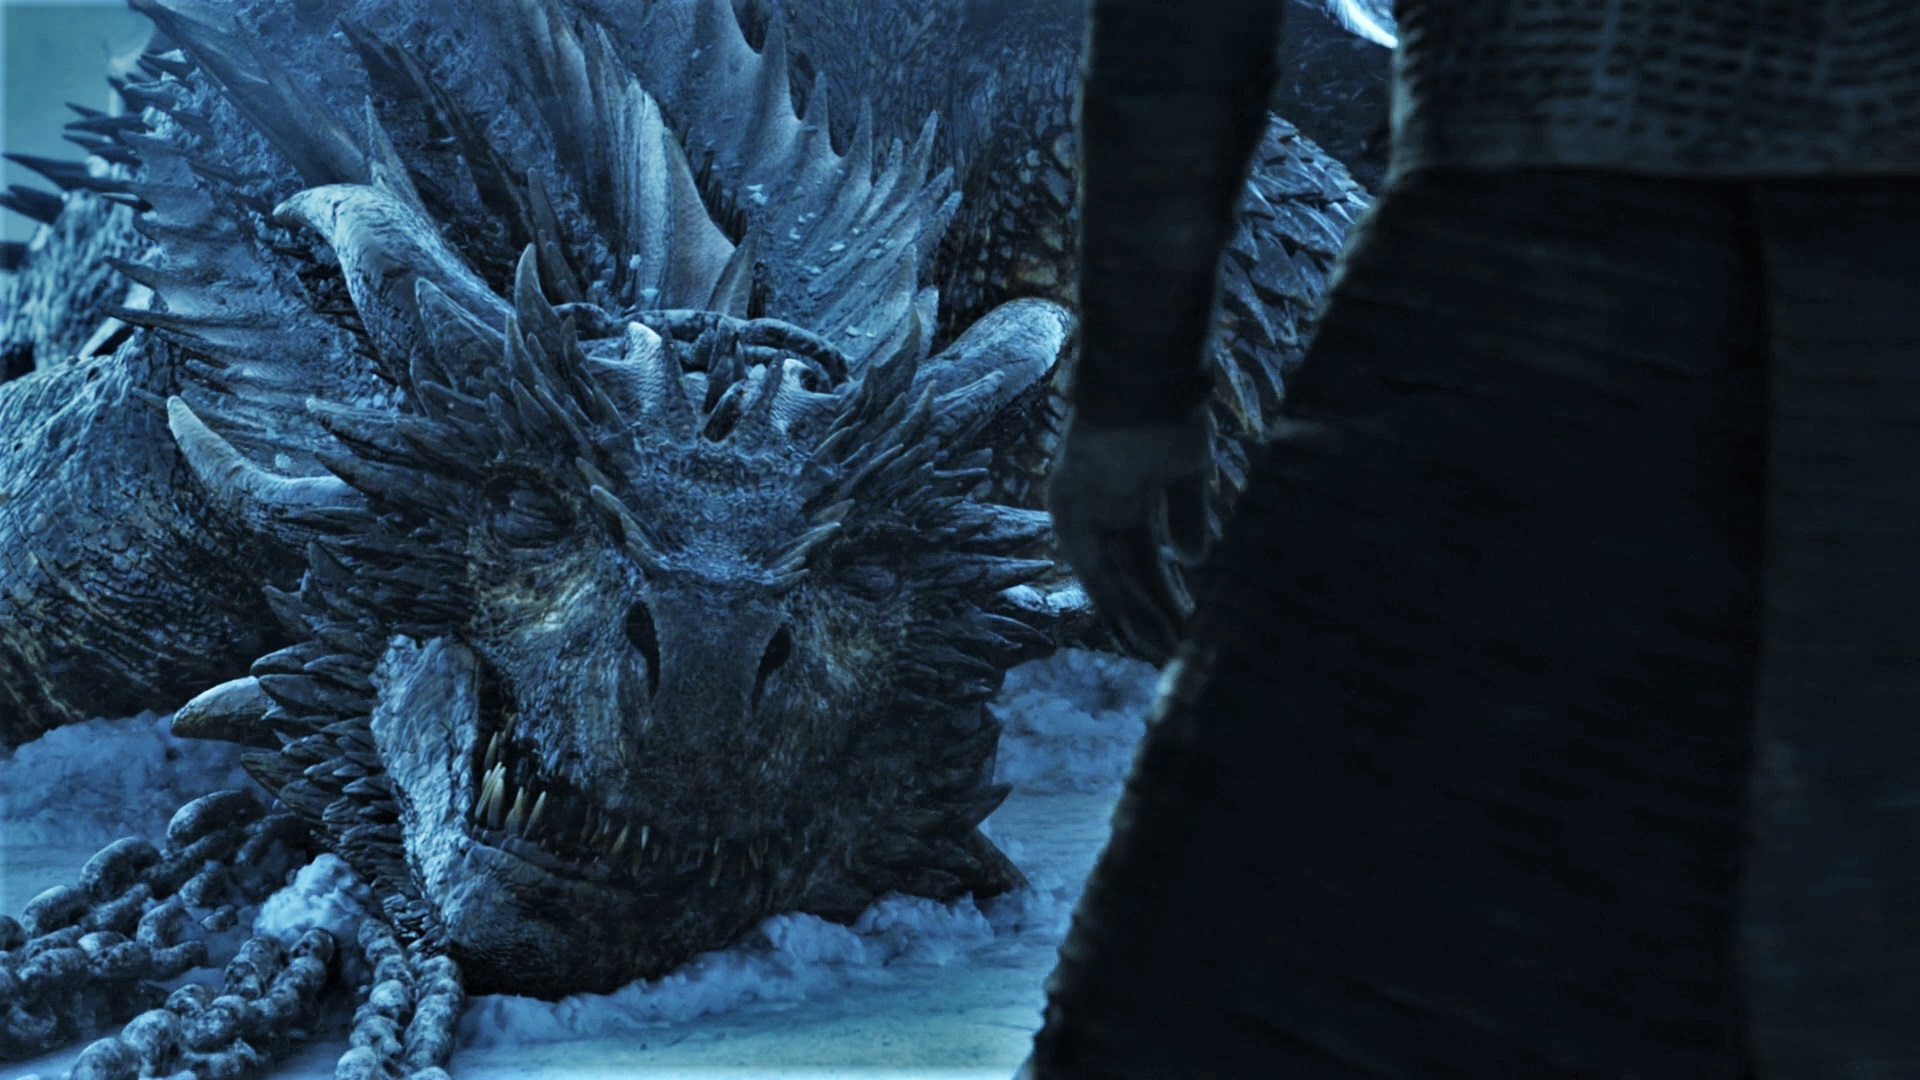 It may be one of the reasons why Season 7 of 'Thrones' landed on many critics' Best of 2017 lists, but Viserion's death still hurts.